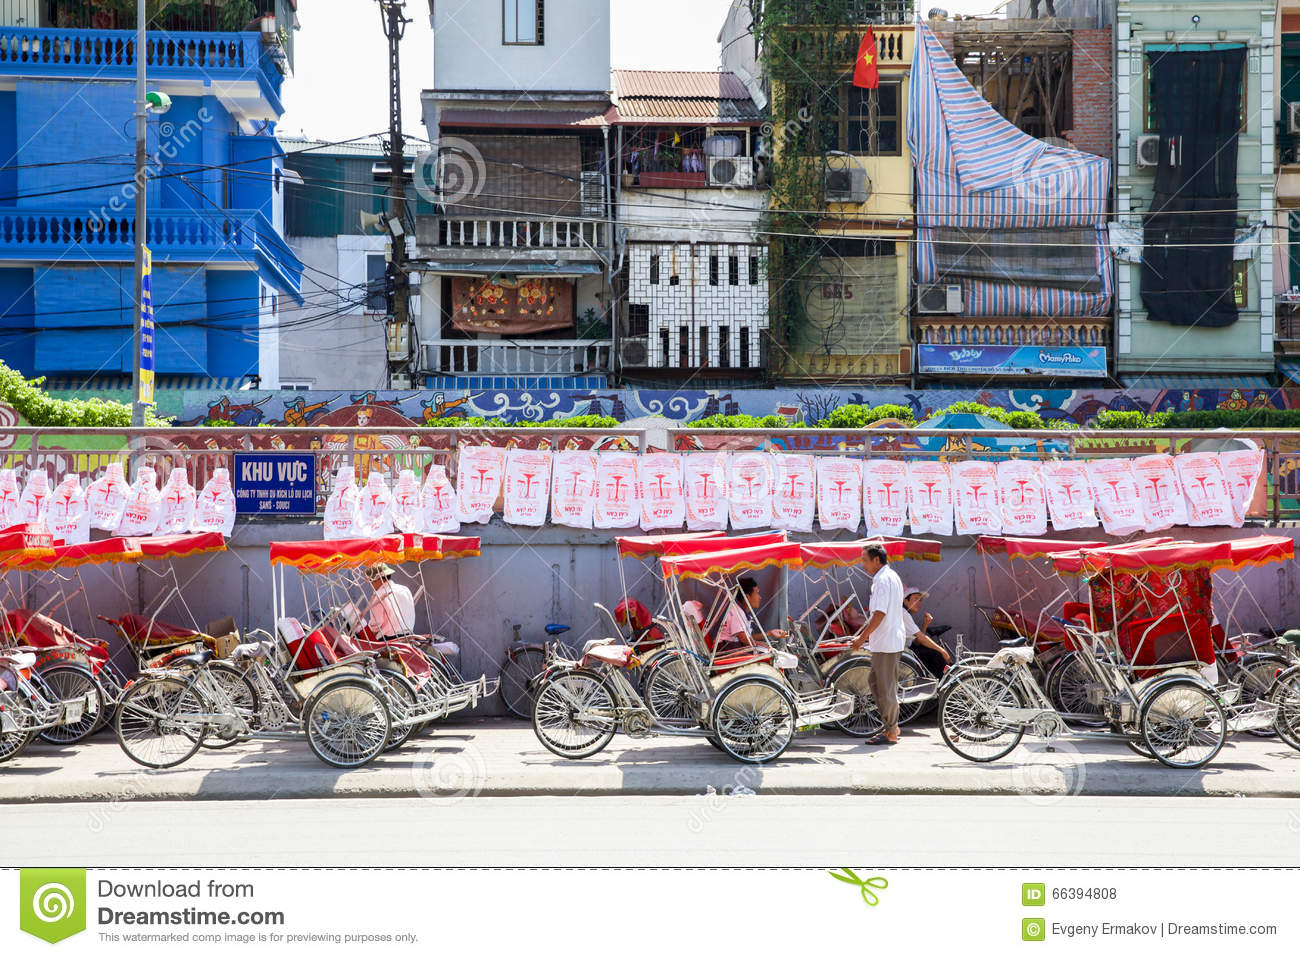 Vietnamese Rickshaw Parking Editorial Stock Photo Image of passenger, exotic 66394808